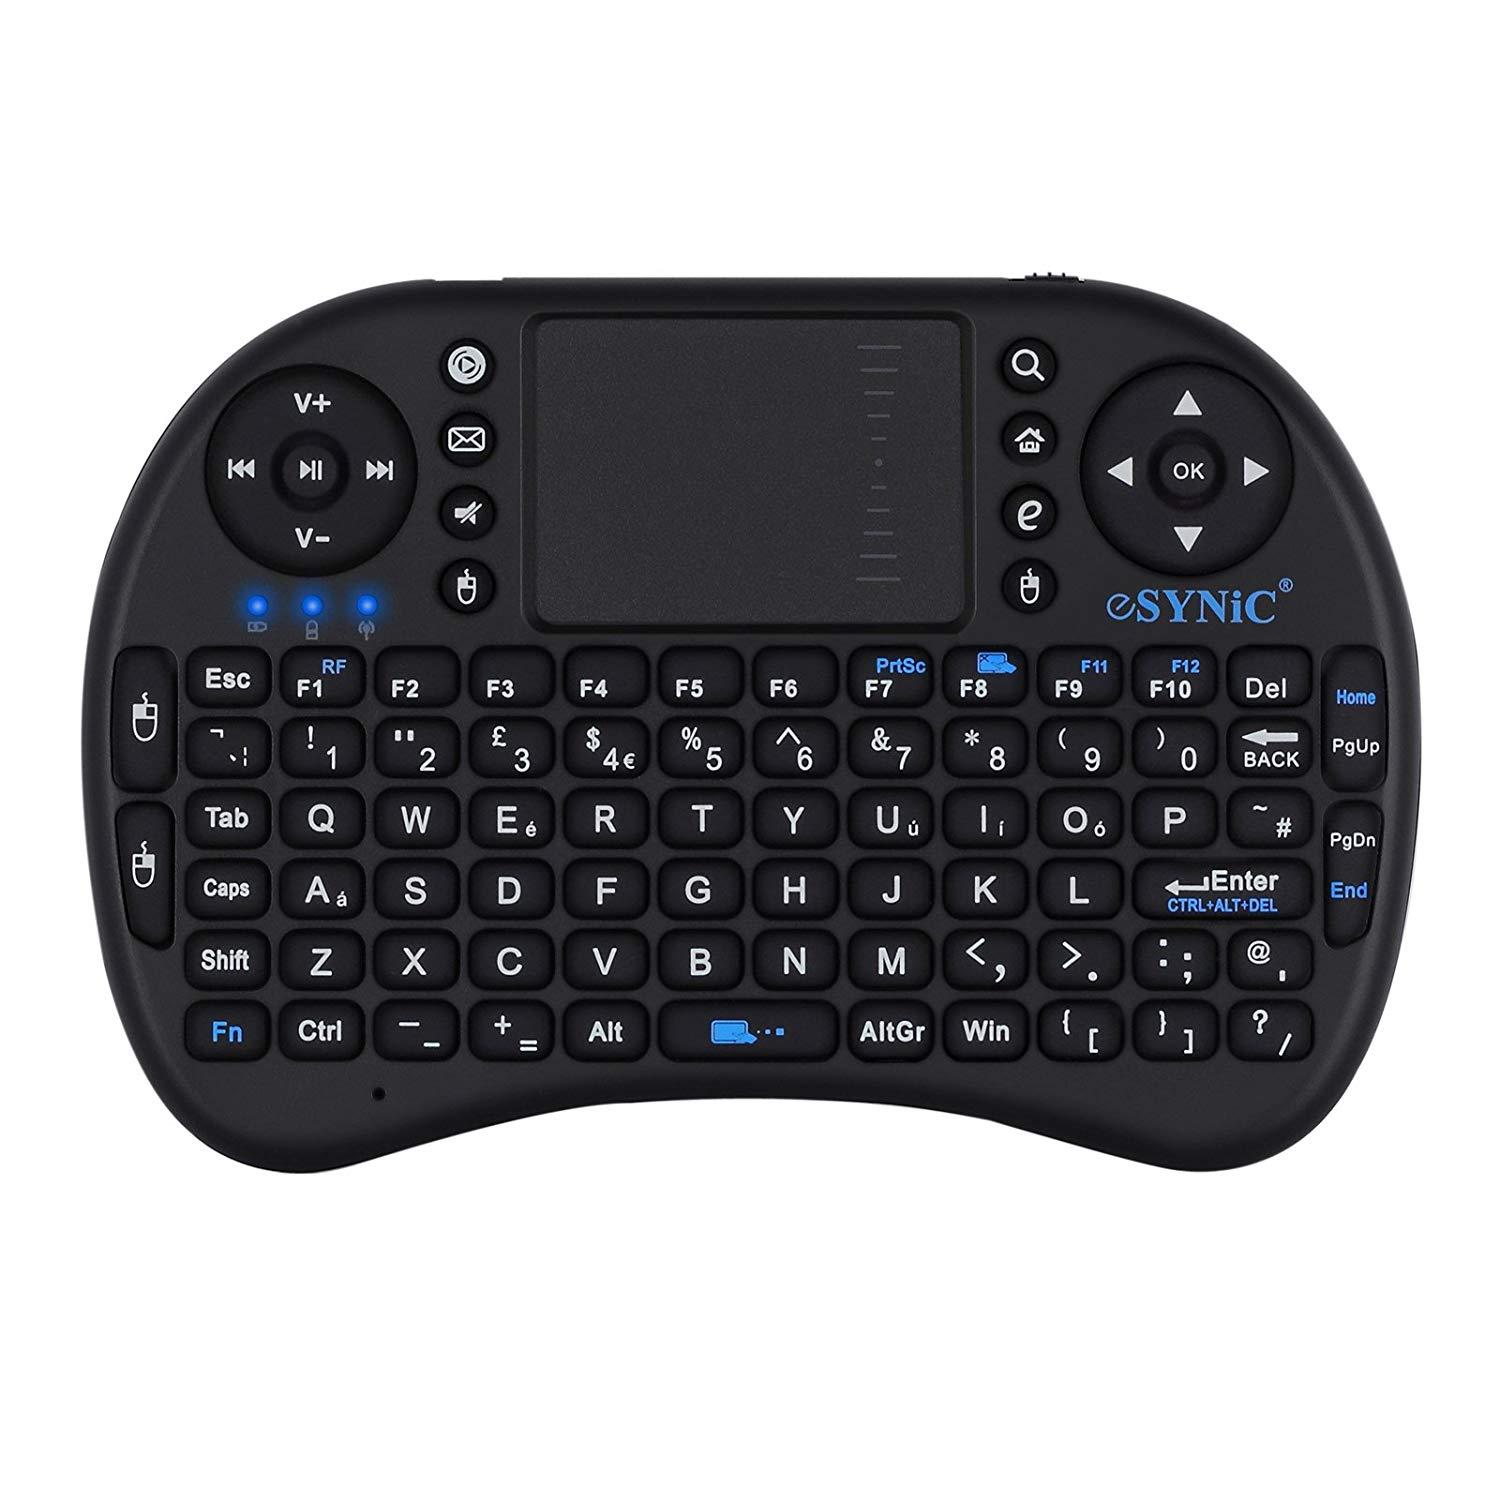 366f091381b Product details of ESYNIC Mini Wireless Keyboard 2.4G with Touch pad Combo  - Multimedia Keys for Smart TVs